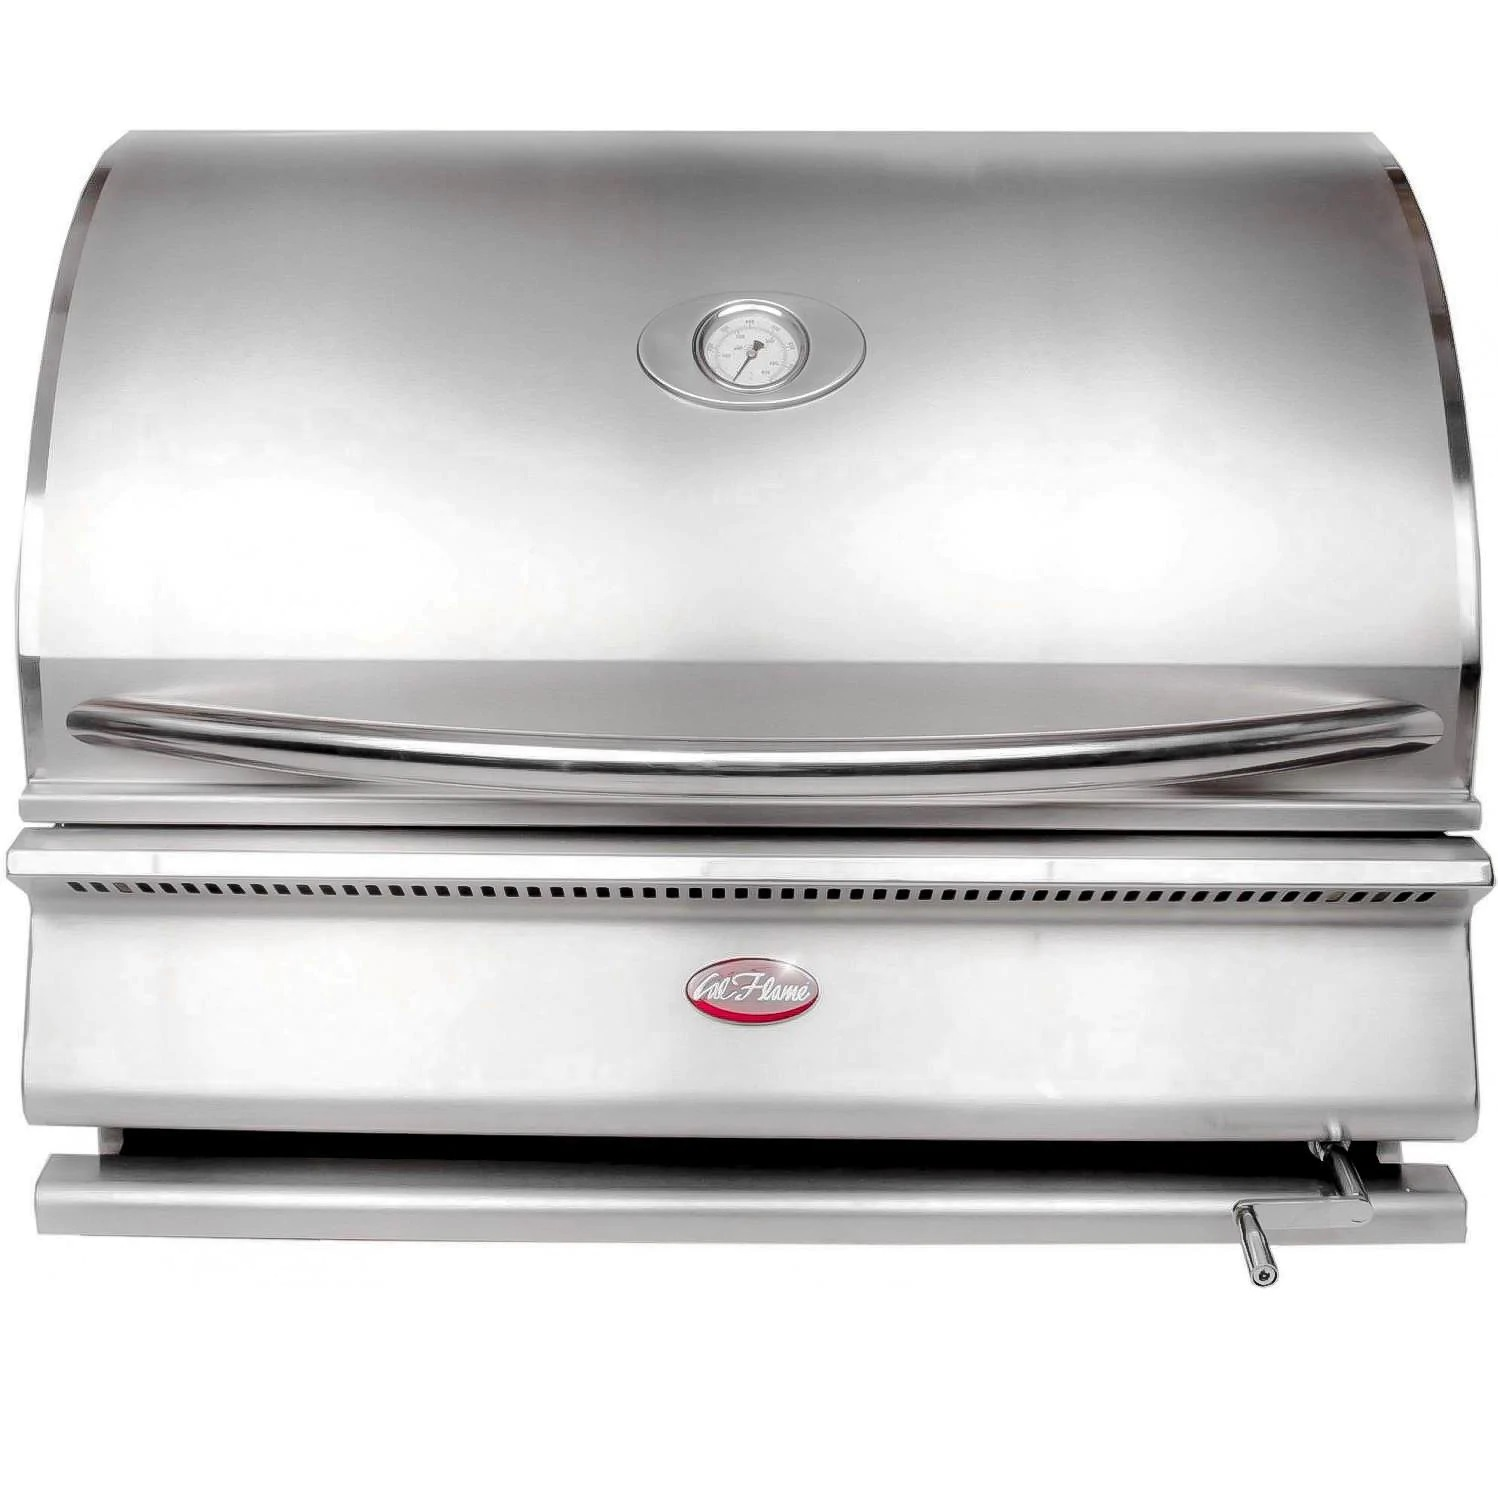 Cal Flame G-Charcoal 31-Inch Built-In Charcoal BBQ Grill - Best Built In Charcoal Grills